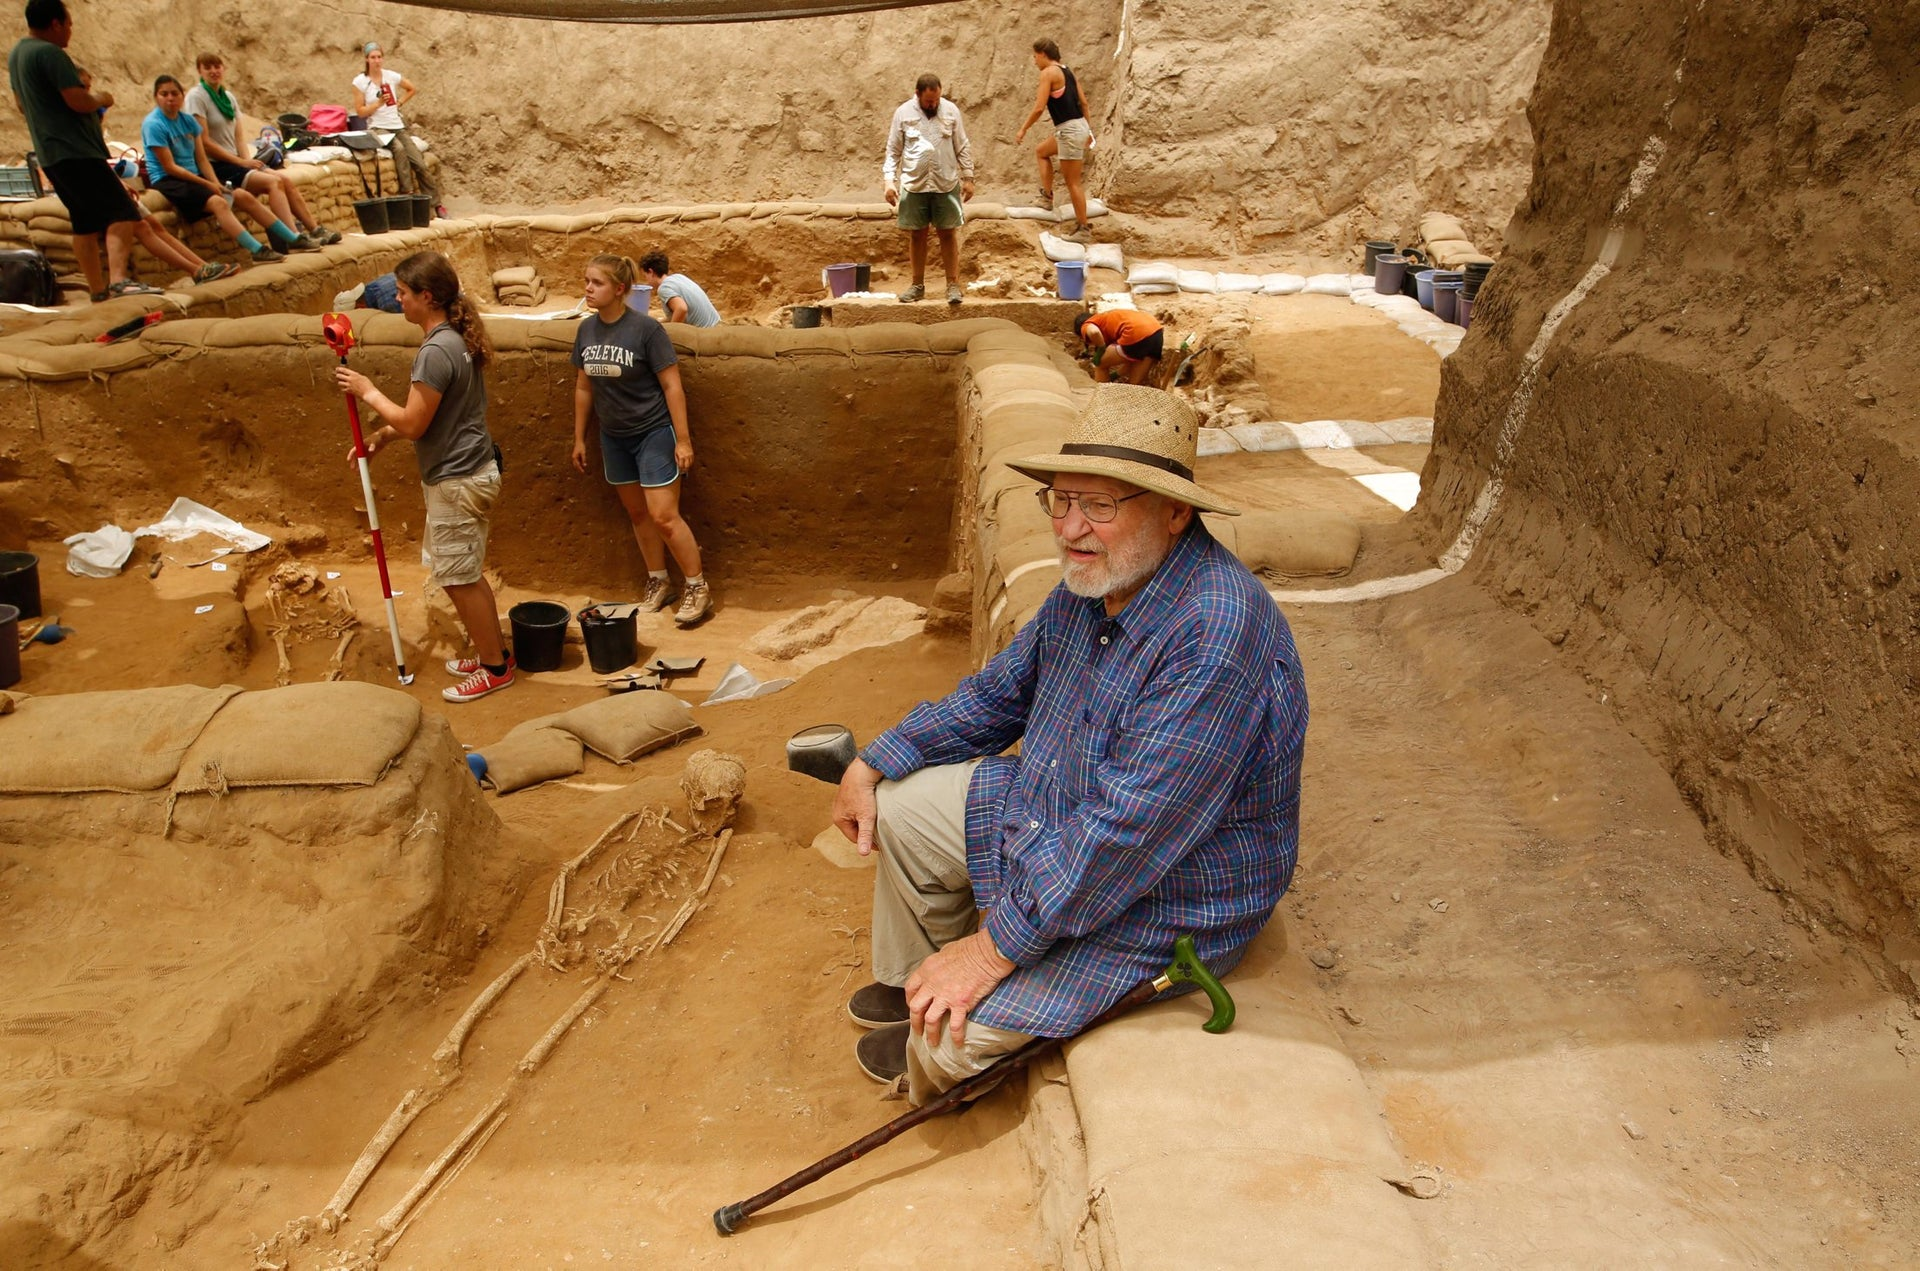 Uncovering the Philistine graveyard, dating to about 3,000 years ago, in Ashkelon.